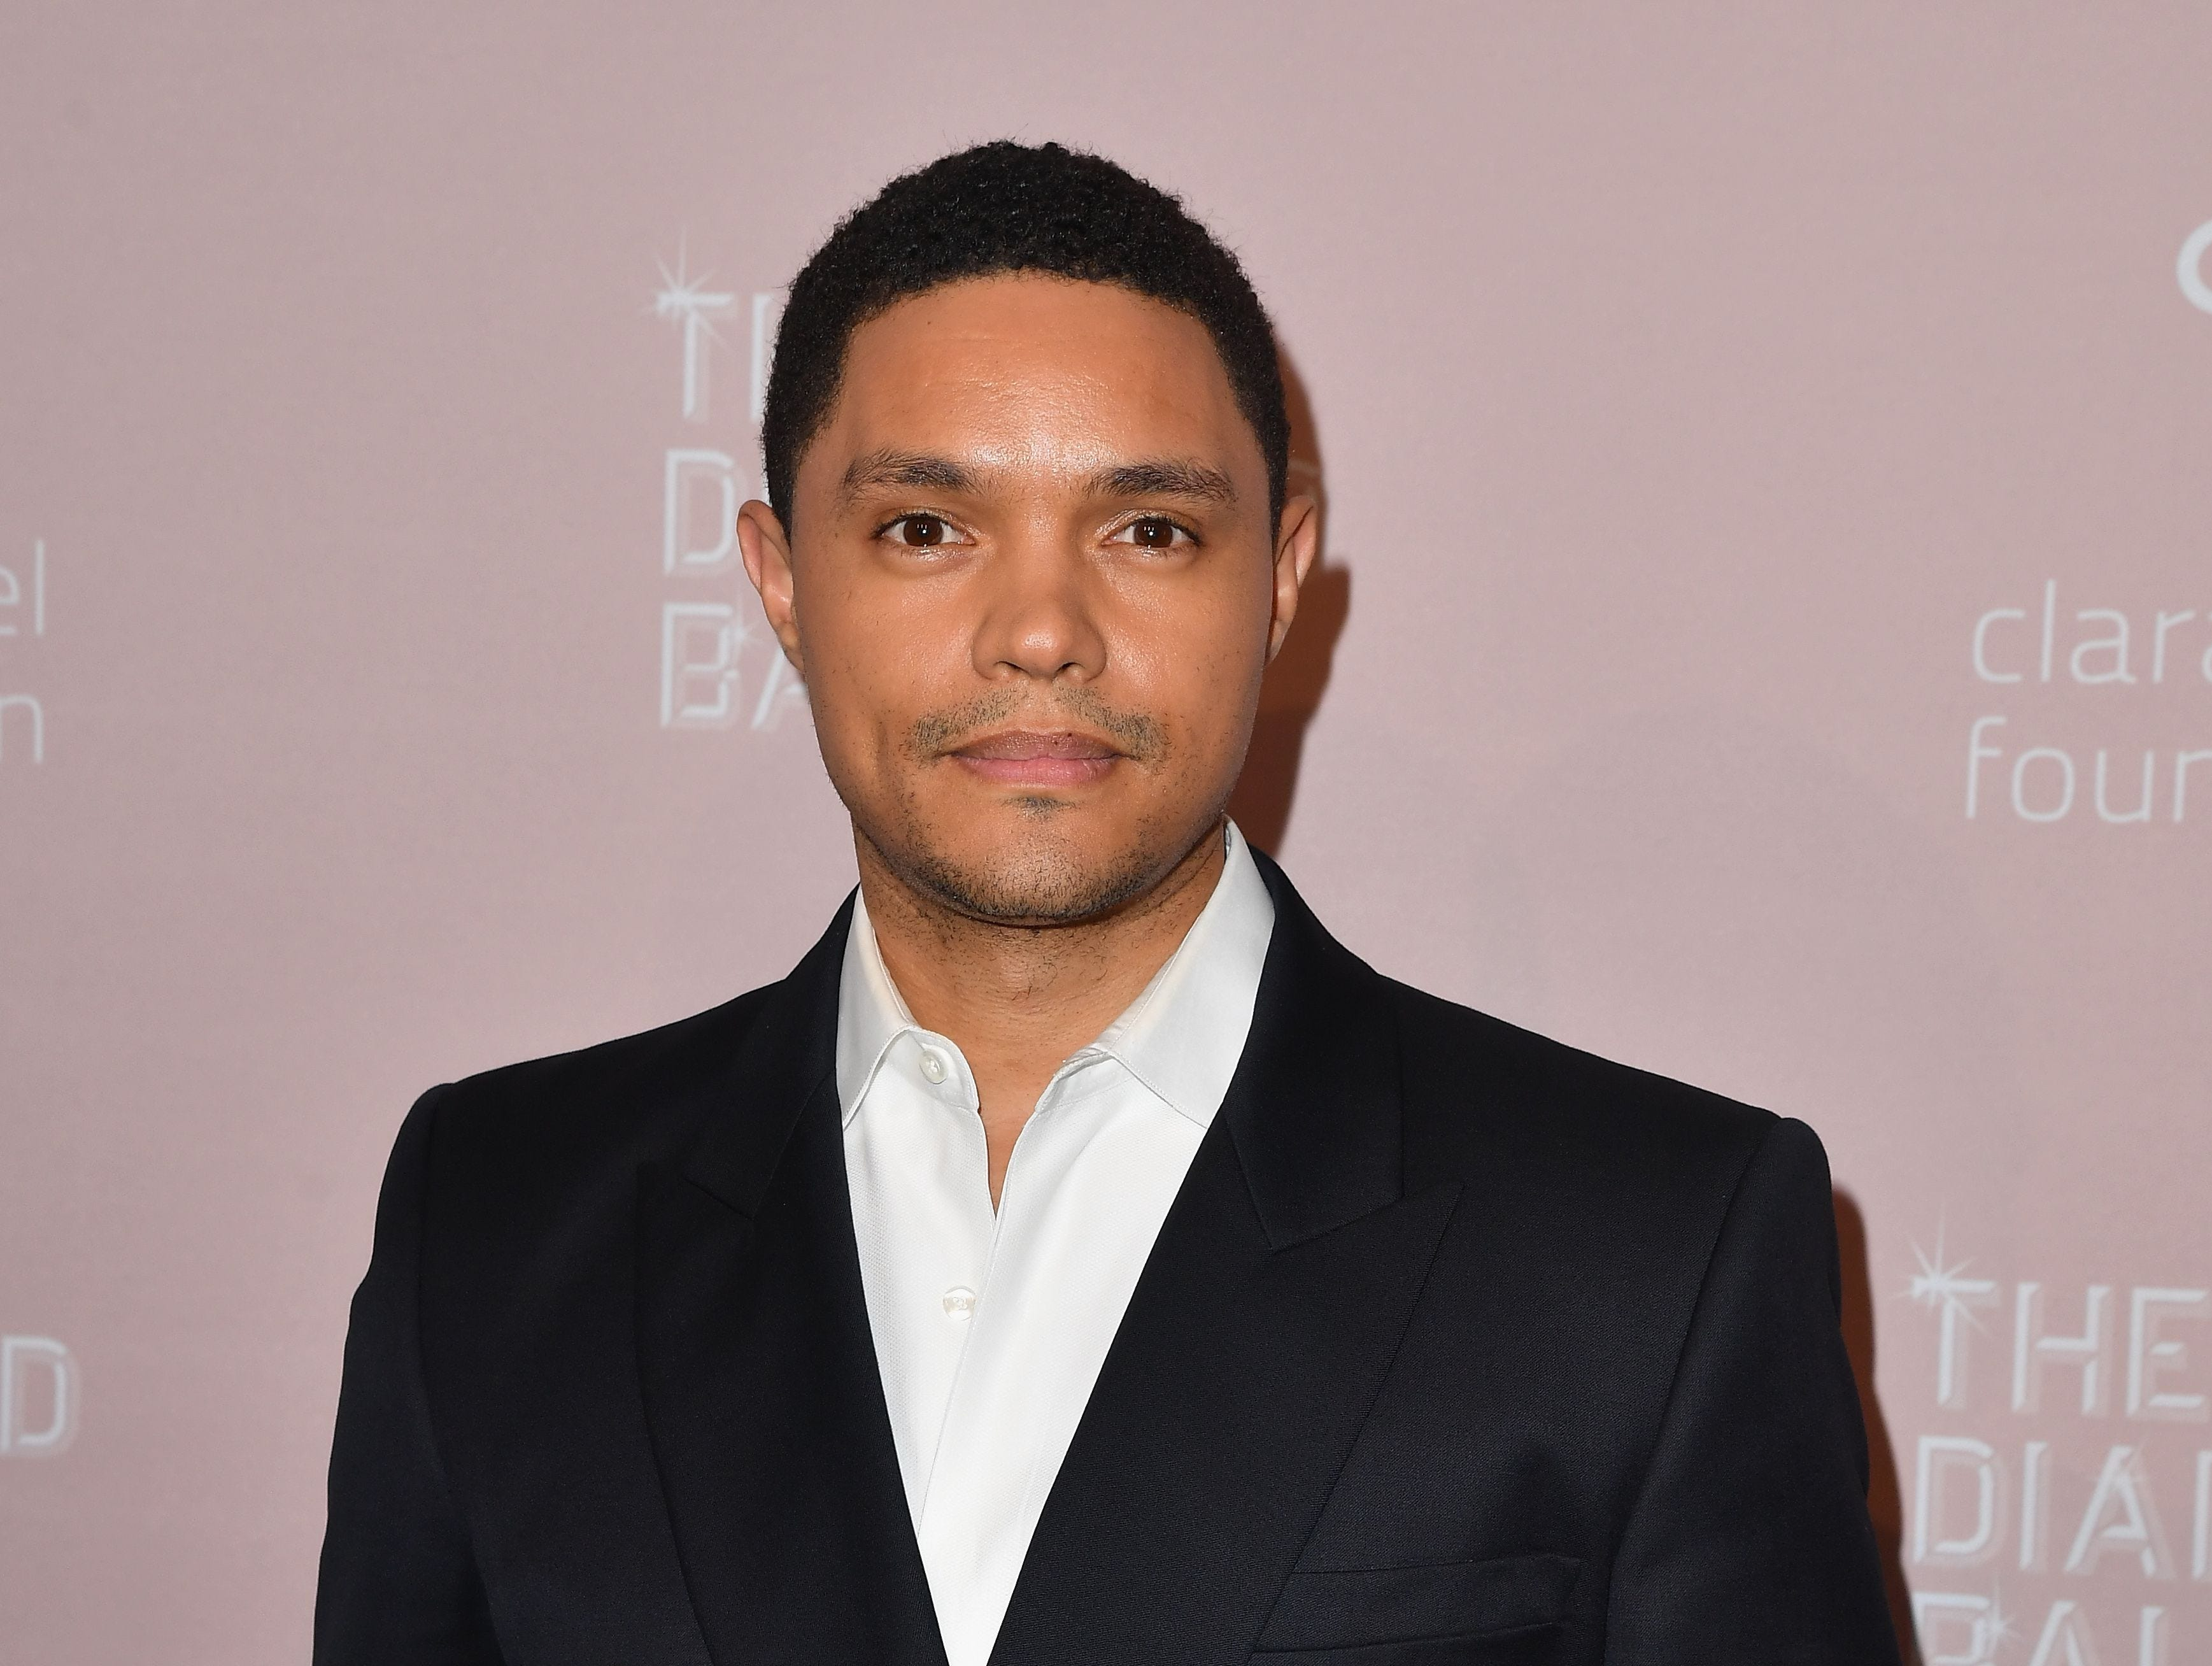 South African comedian Trevor Noah attends Rihanna's 4th Annual Diamond Ball at Cipriani Wall Street on September 13, 2018 in New York City. (Photo by Angela Weiss / AFP)ANGELA WEISS/AFP/Getty Images ORIG FILE ID: AFP_1932OF